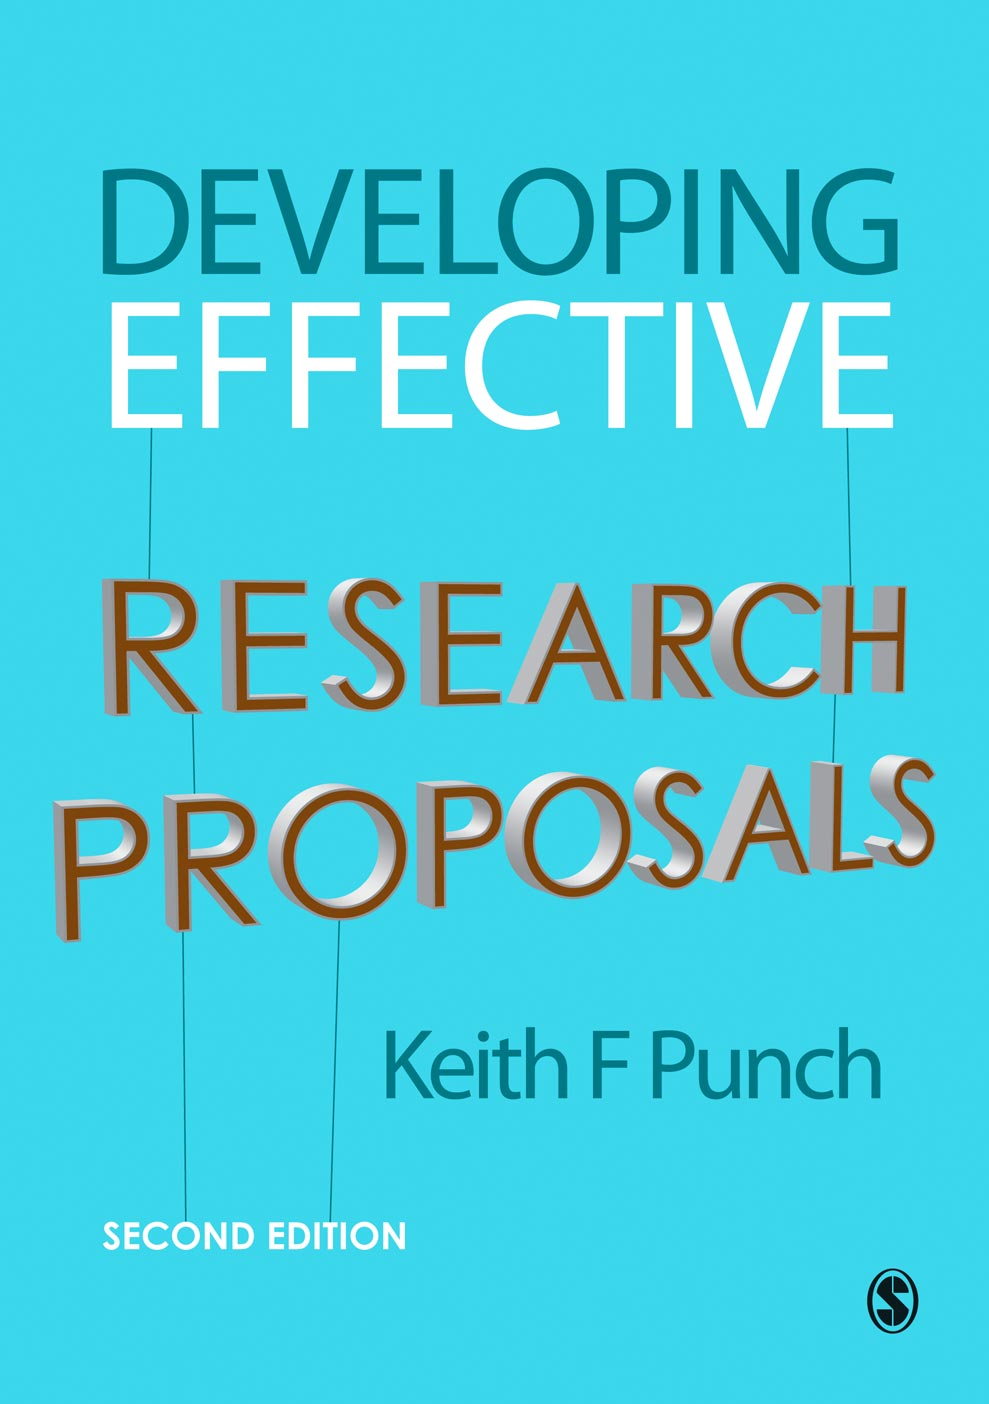 Developing Effective Research Proposals